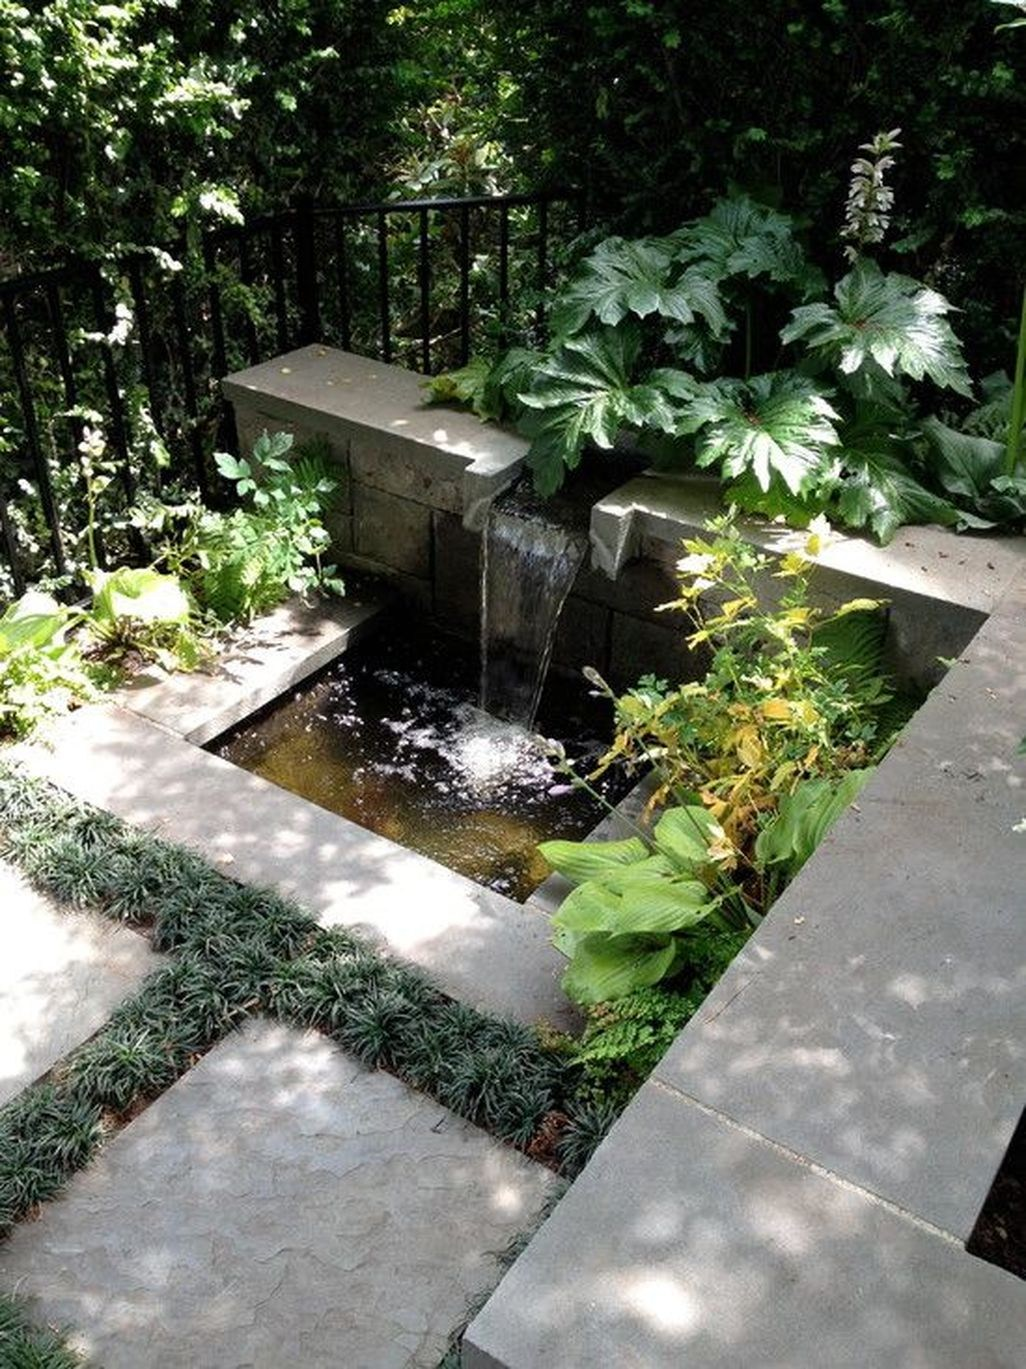 49 Inspiring Zen Water Fountain Ideas Garden Landscaping - TREND4HOMY